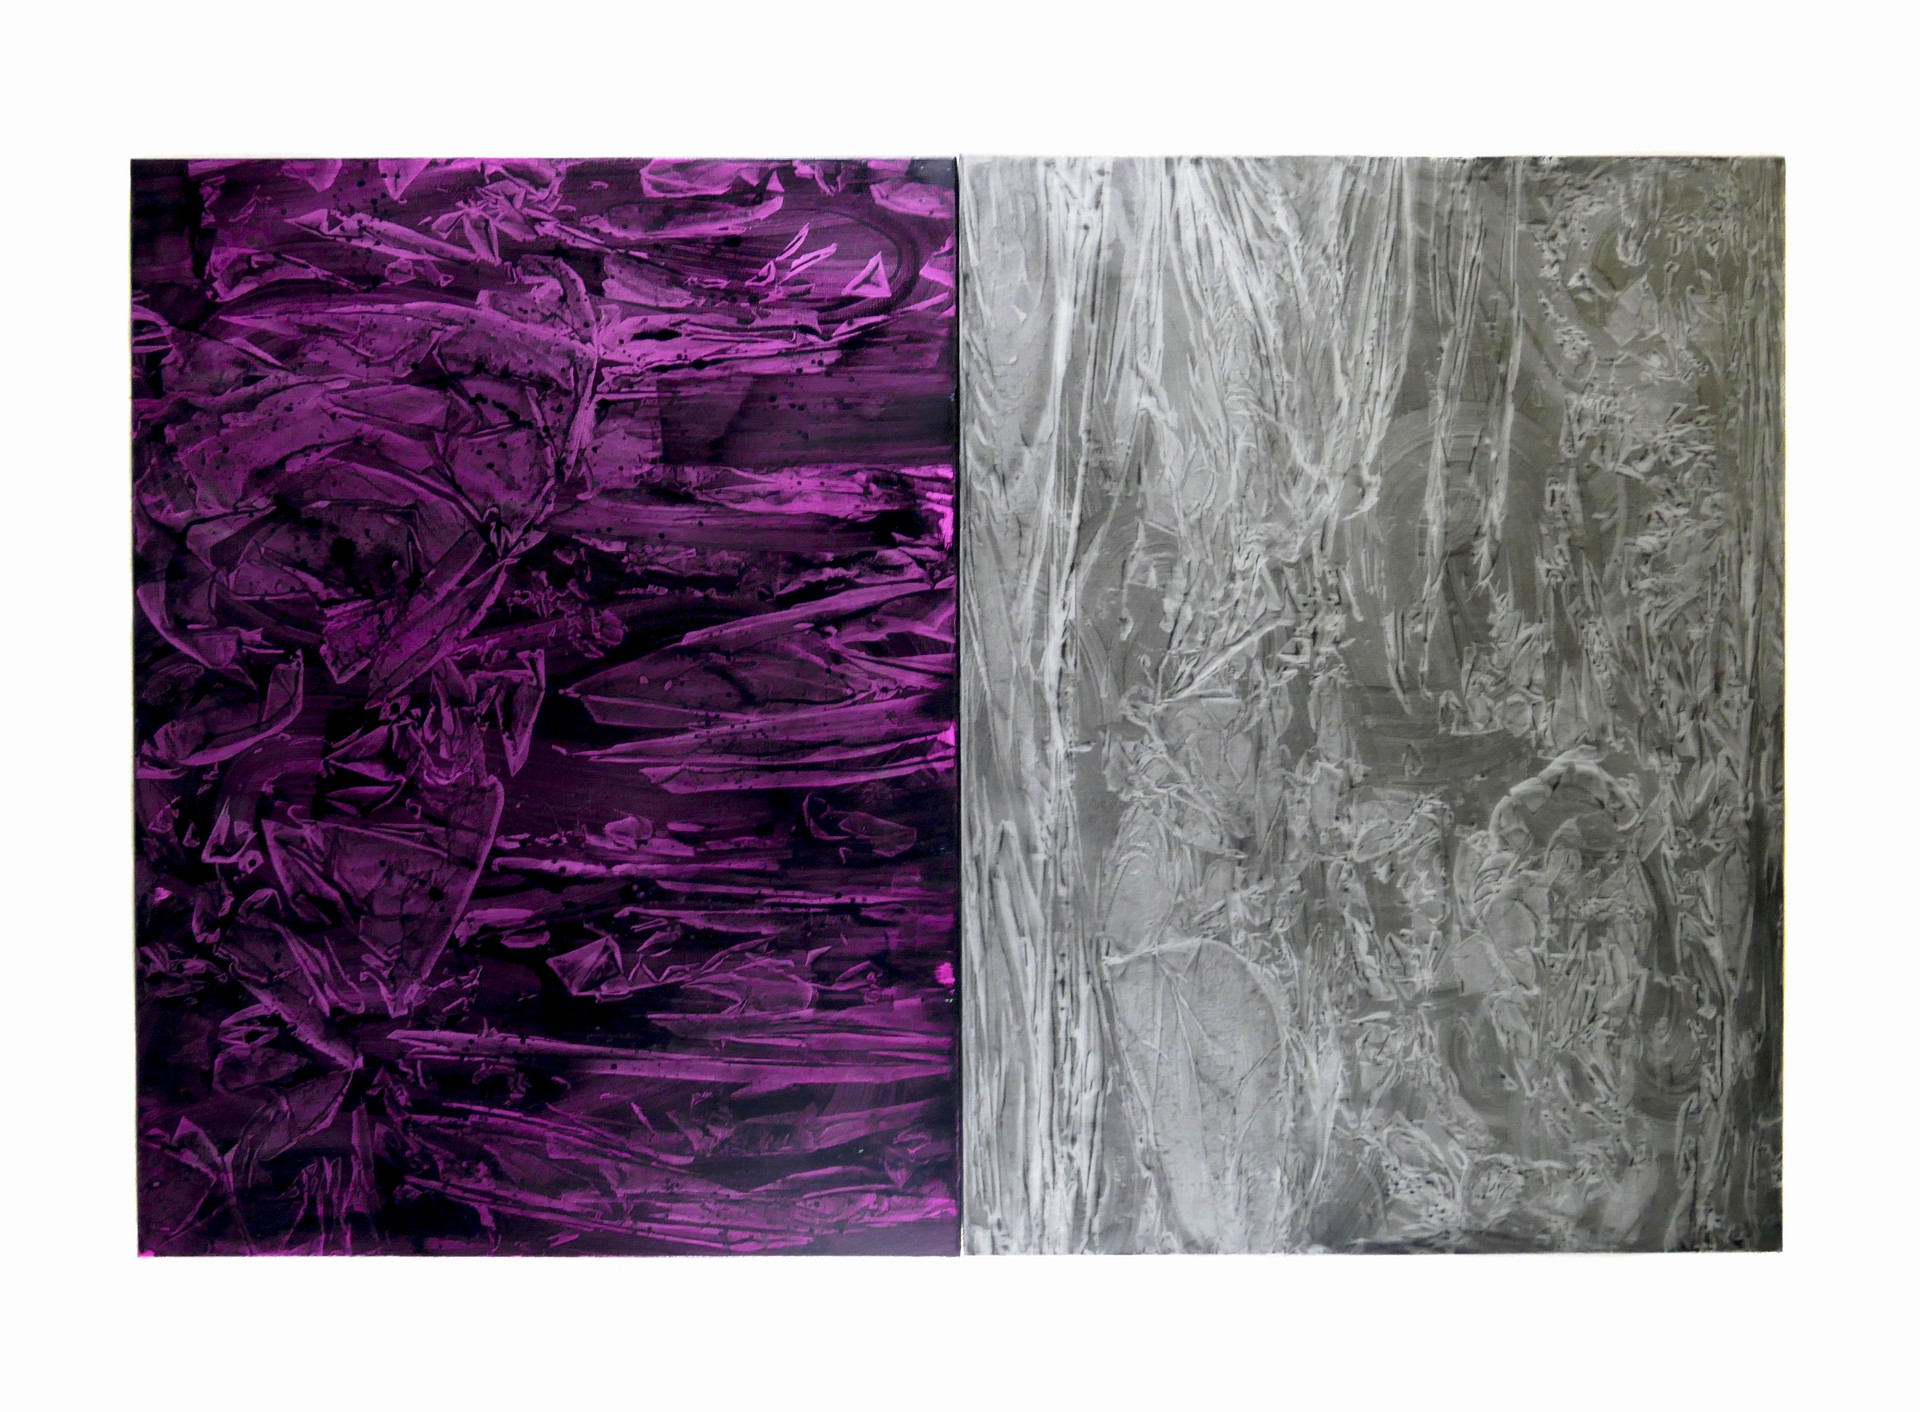 untitled, 2018, oil on linen, diptych 76 x 101cm each